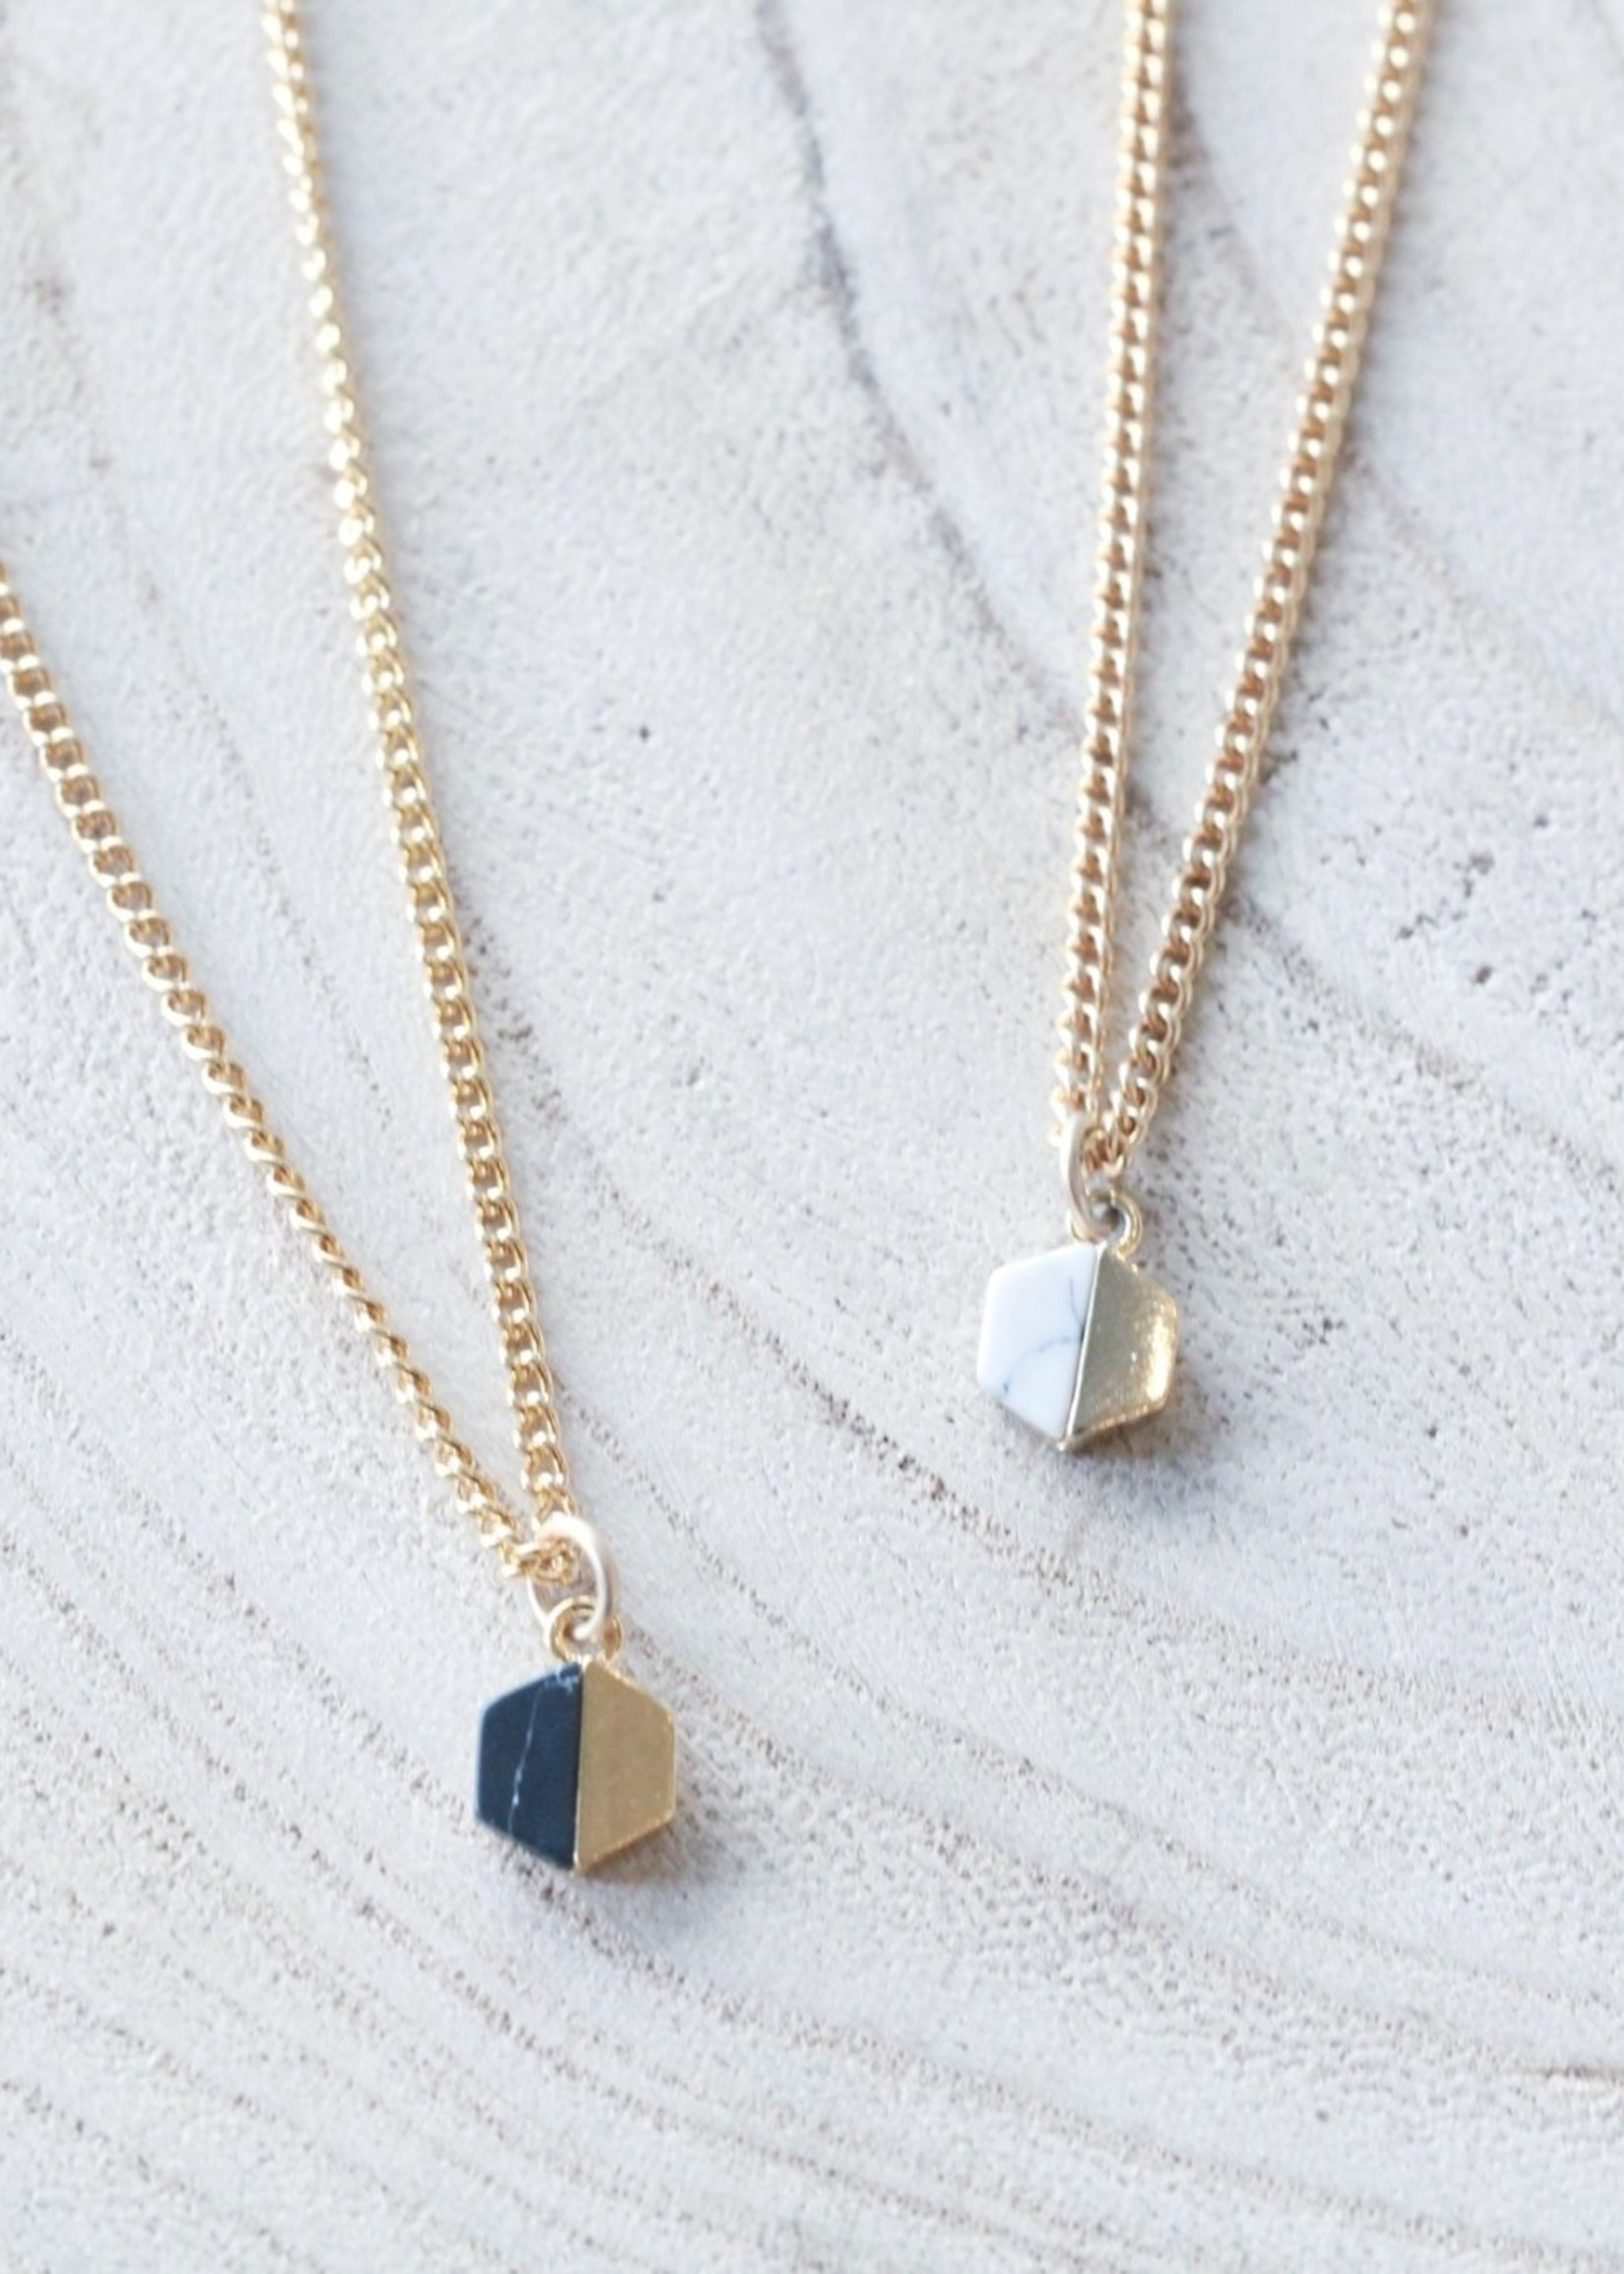 Allison Conway AC Dainty Hexagon Charm Necklace